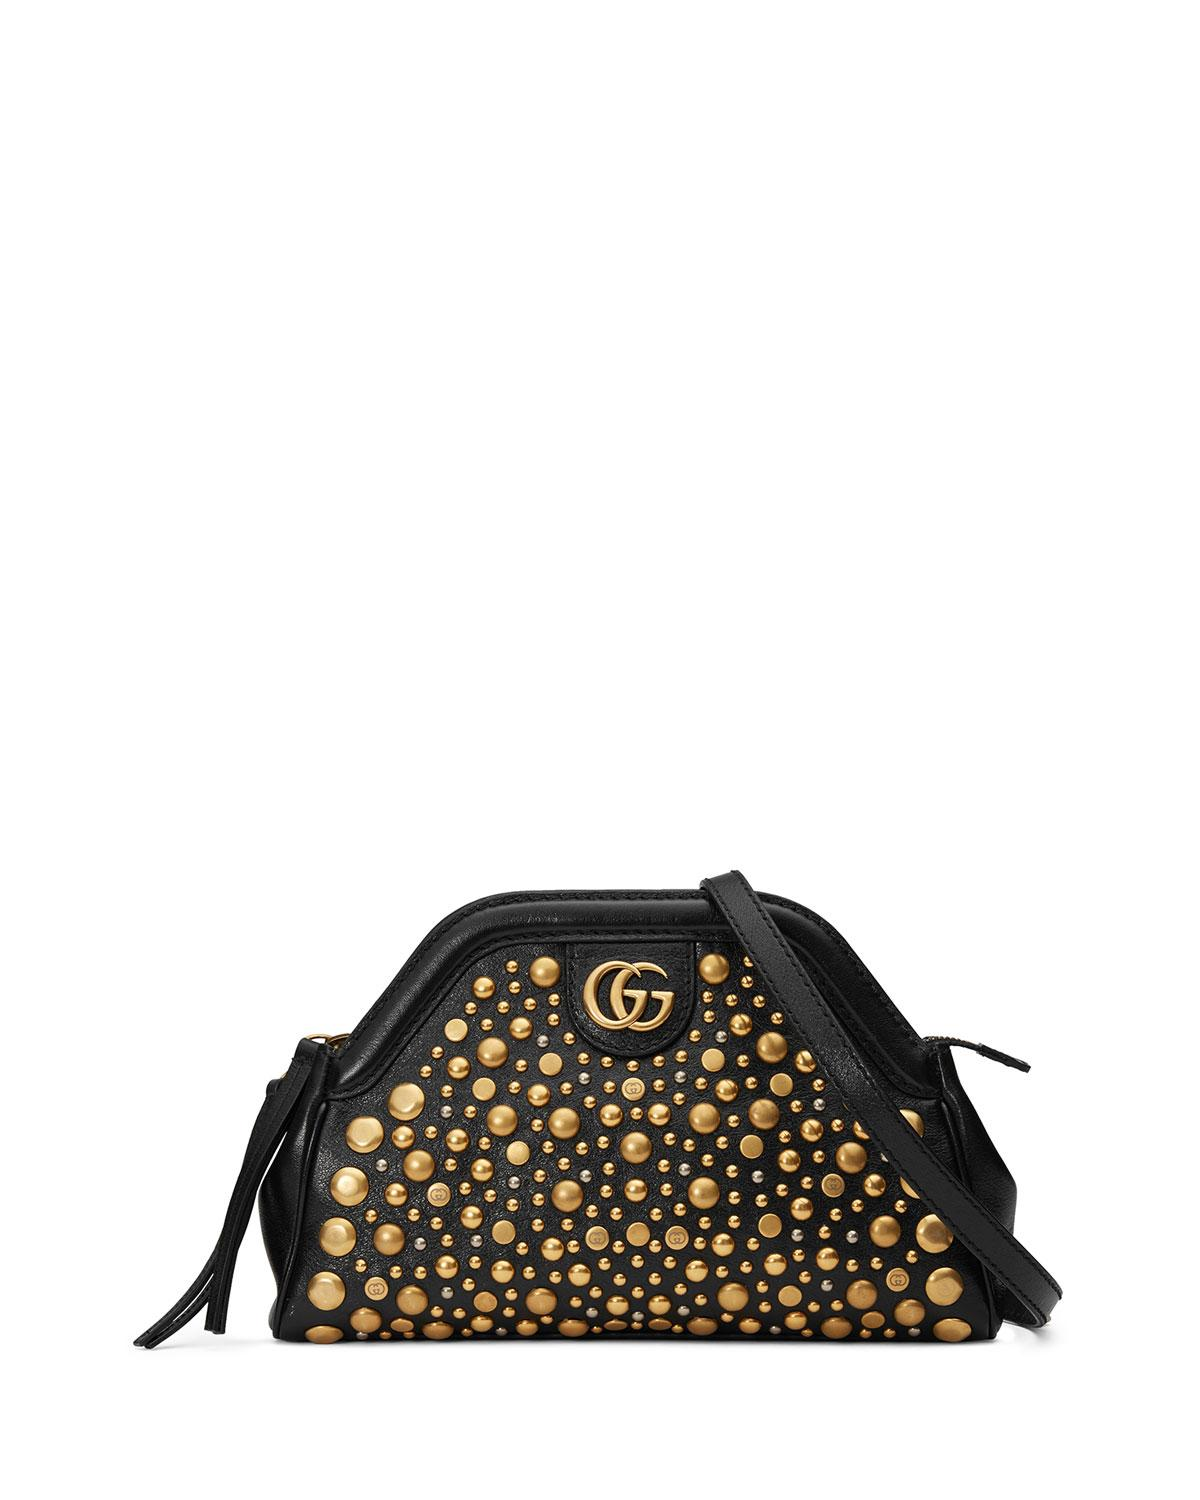 09b3b8596aa Gucci Small Re Belle Studded Leather Crossbody Bag Black In